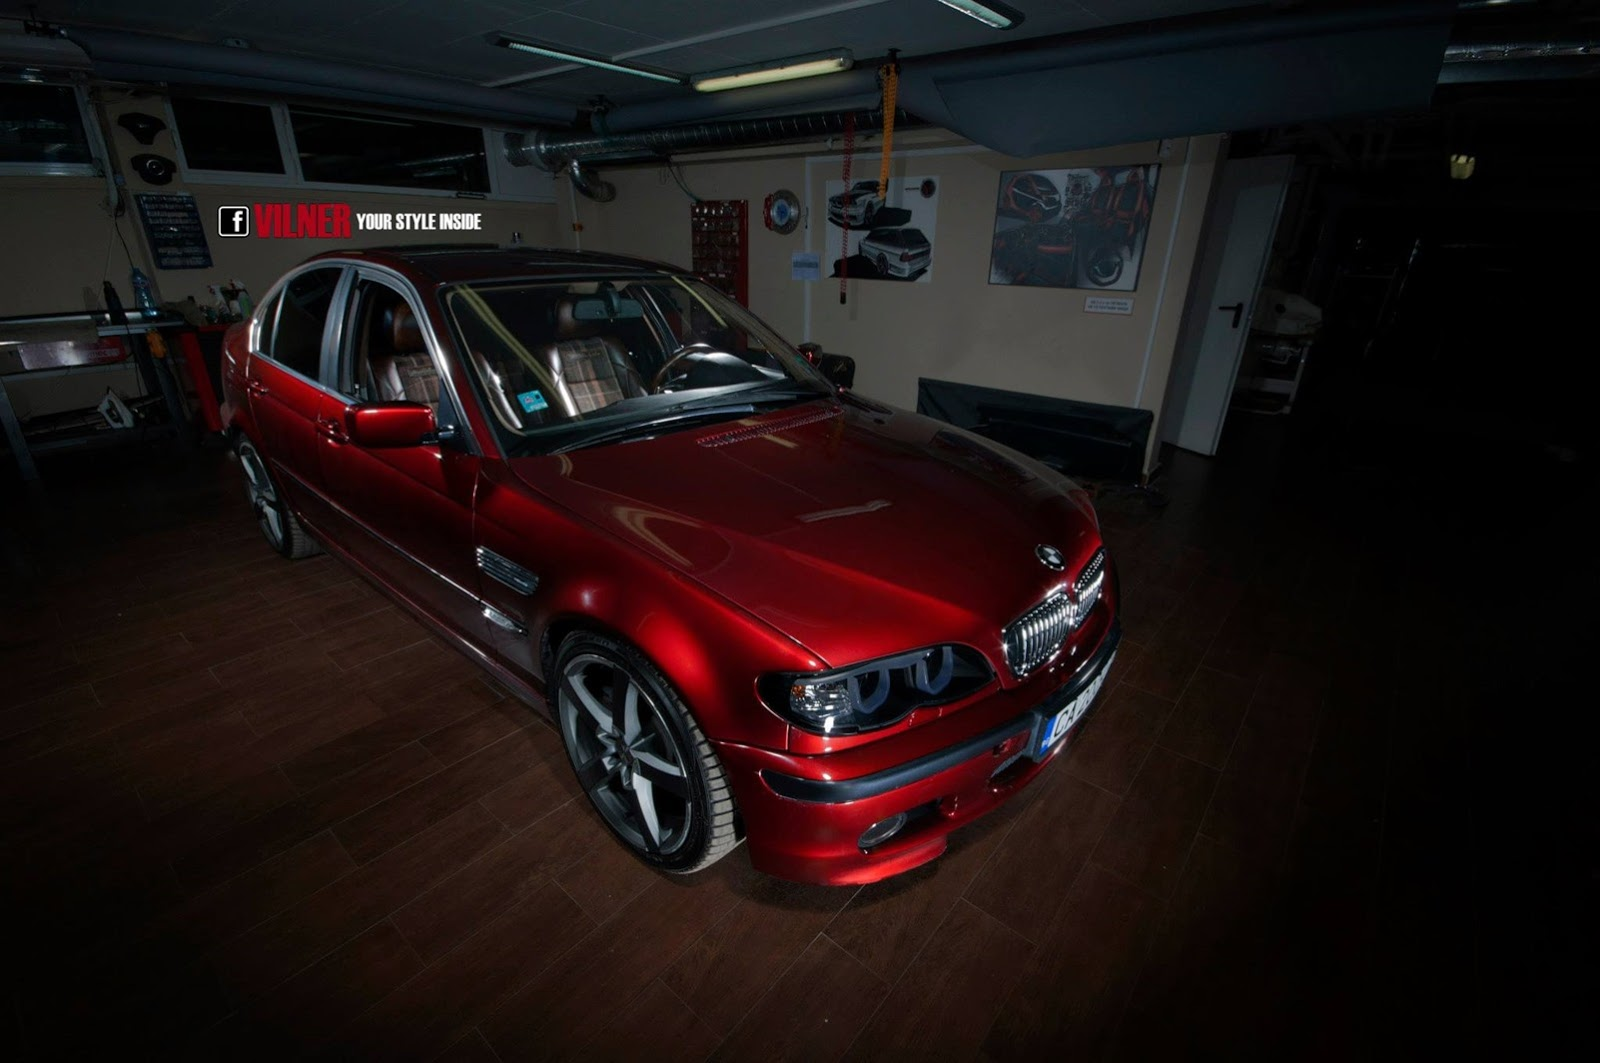 Bmw E46 3 Series Gets Hipster Interior From Vilner